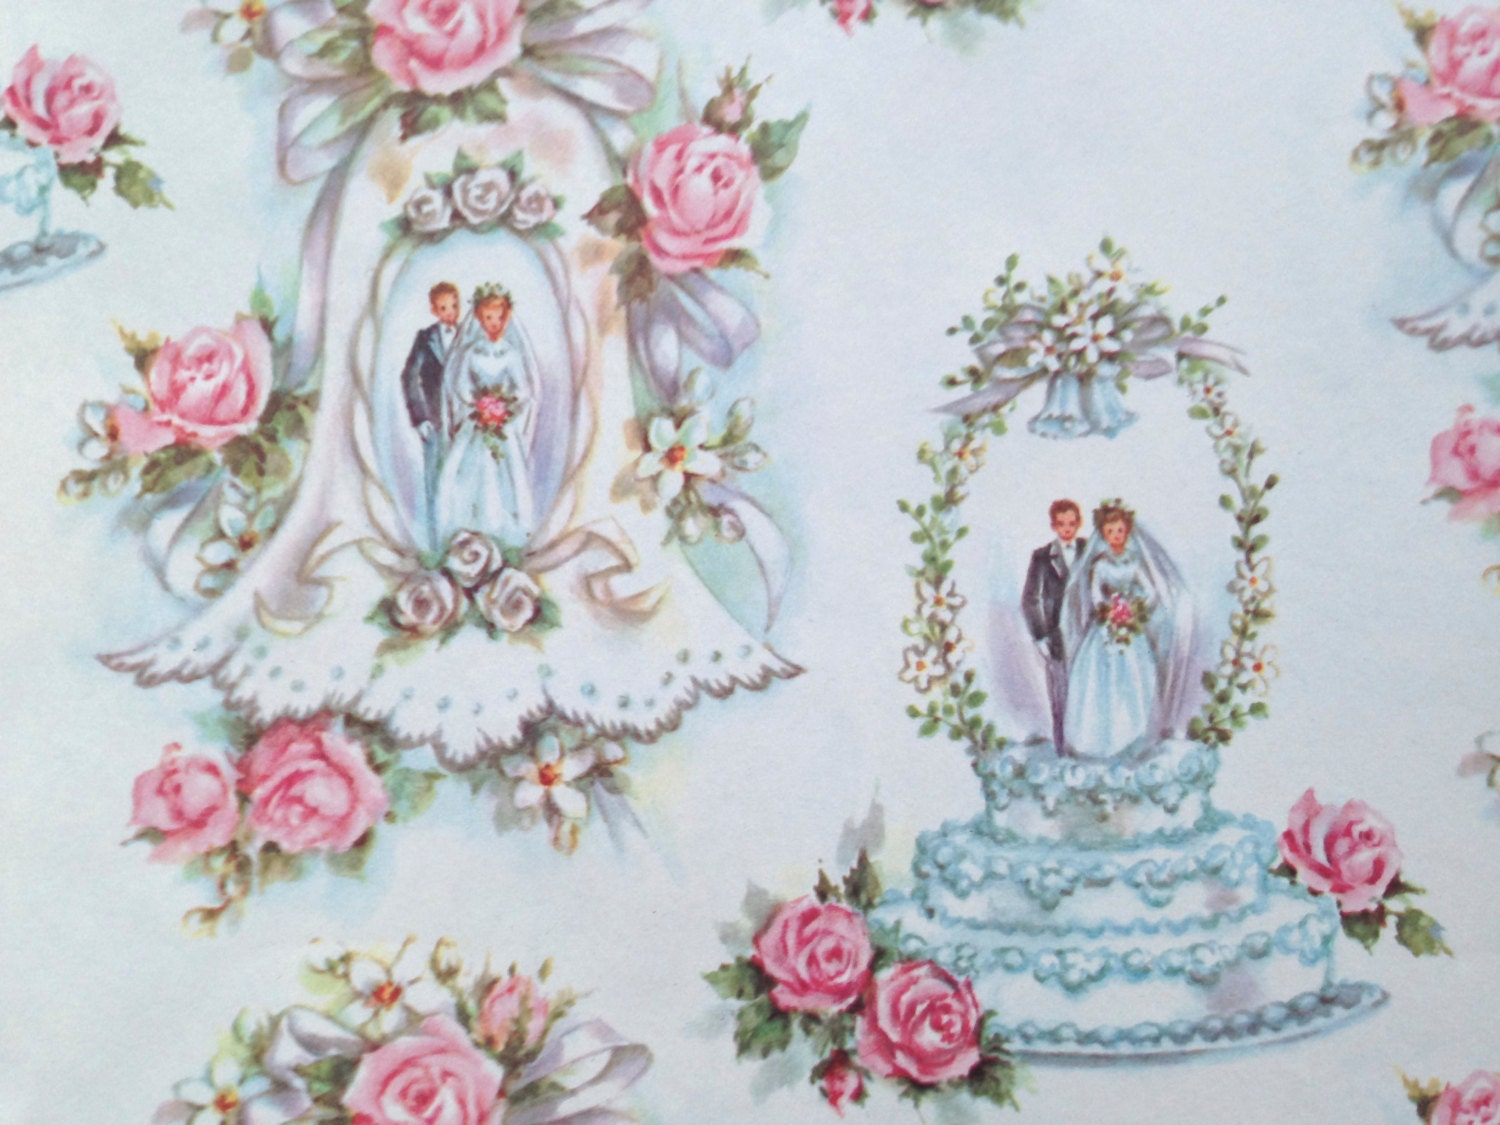 Retro Wedding Gifts: Vintage Gift Wrapping Paper Bridal Shower Wedding Cake